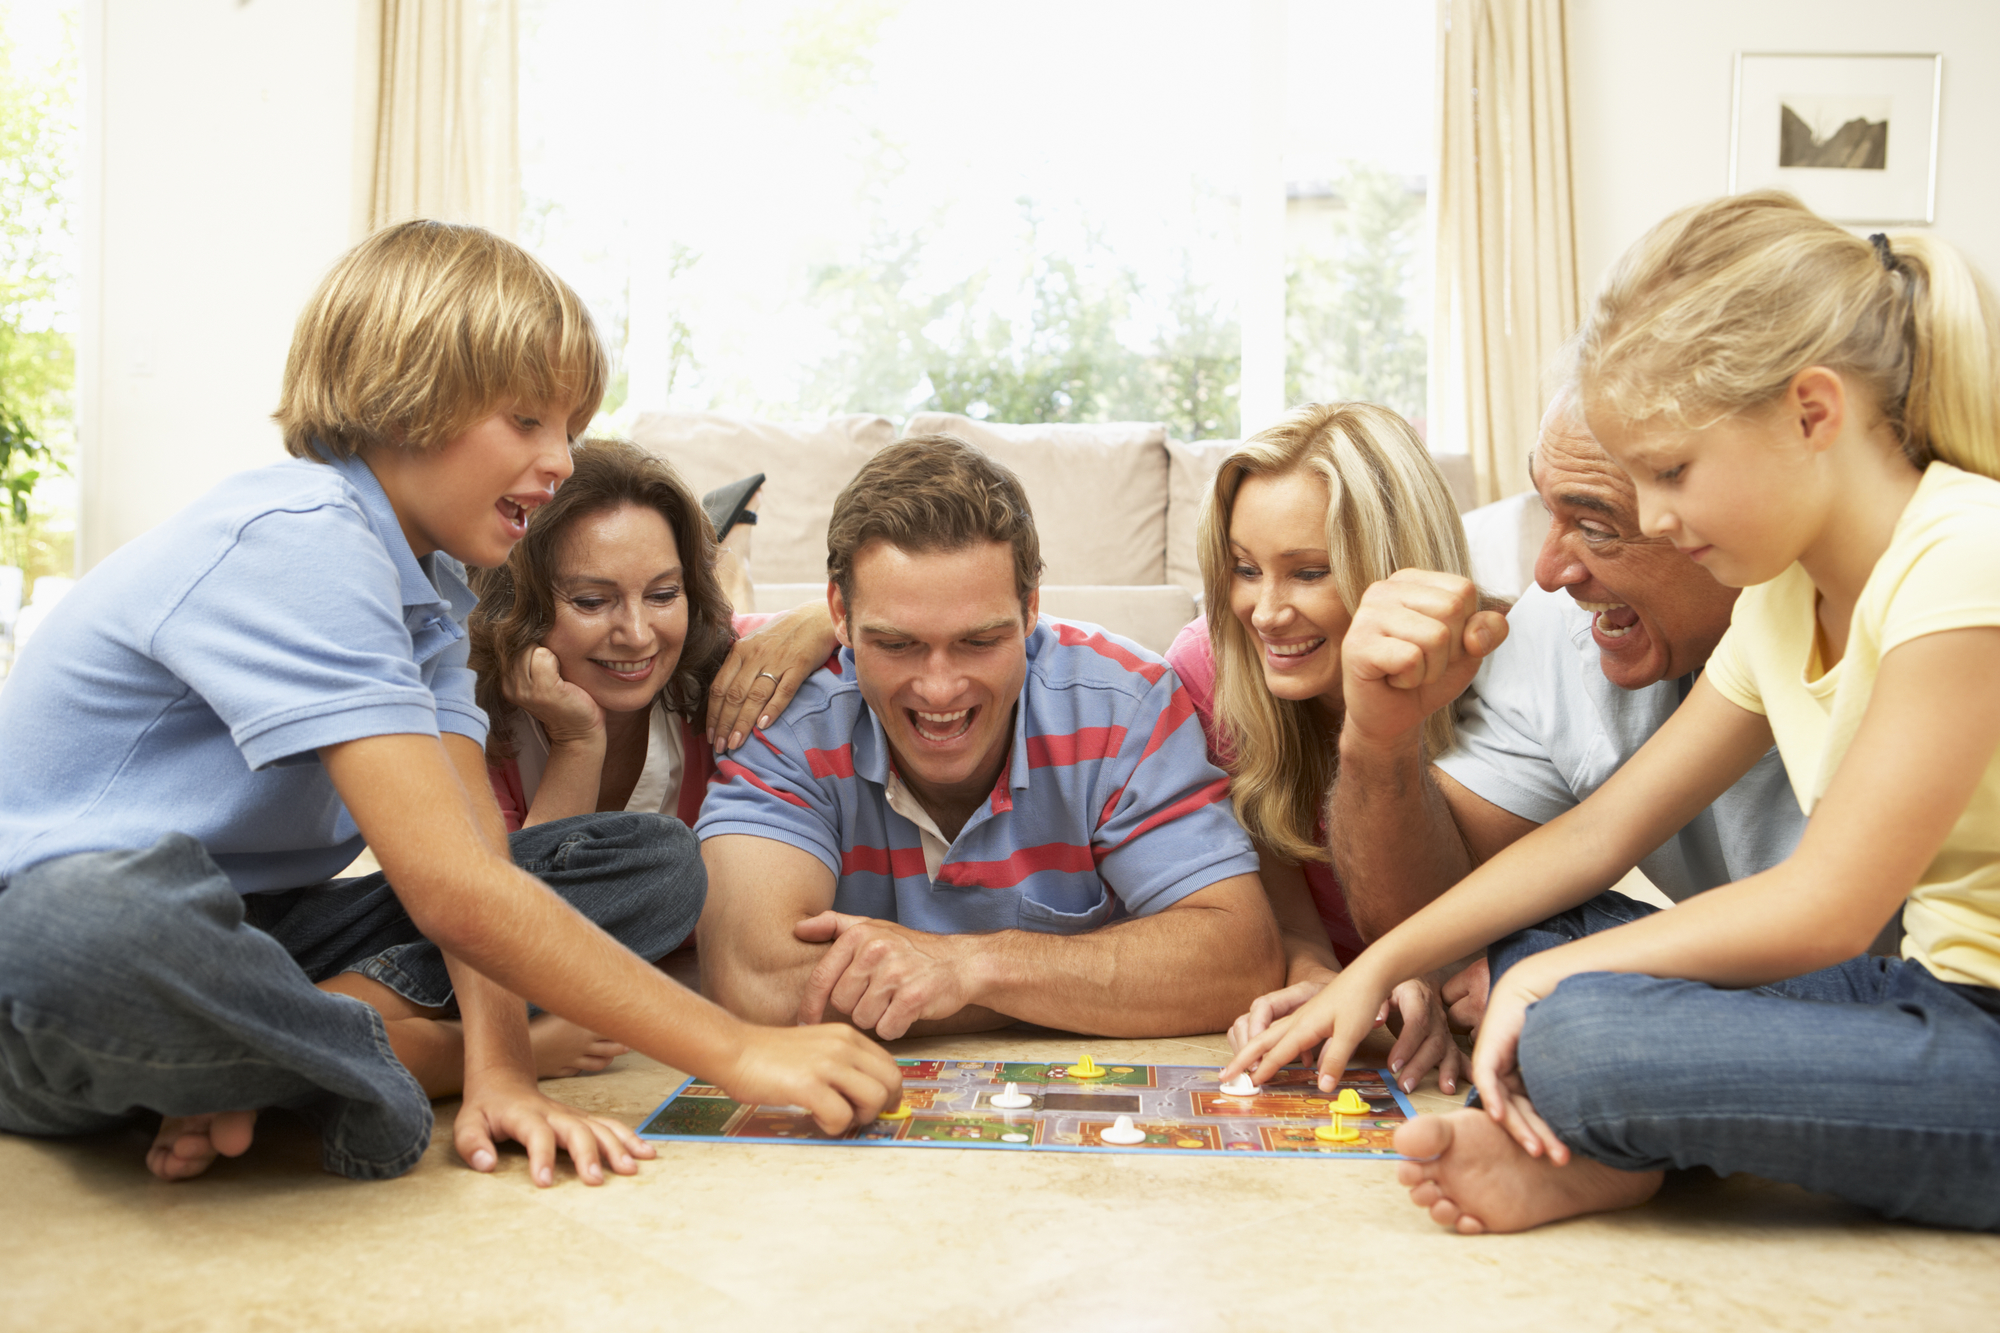 Family Playing Board Game At Home With Grandparents Watching